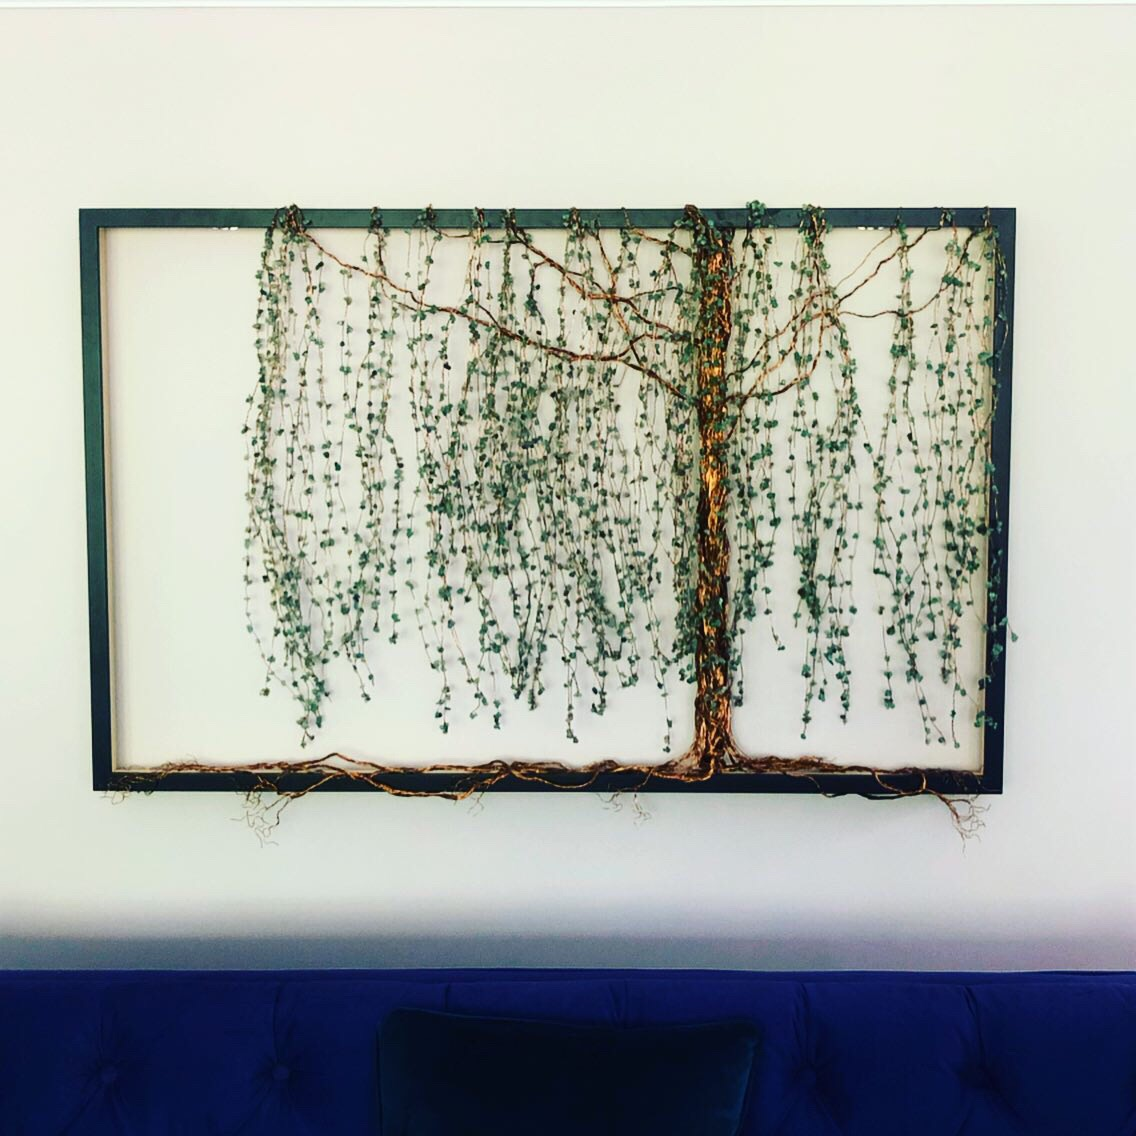 Willow tree sculptural 3D  art work in a frame